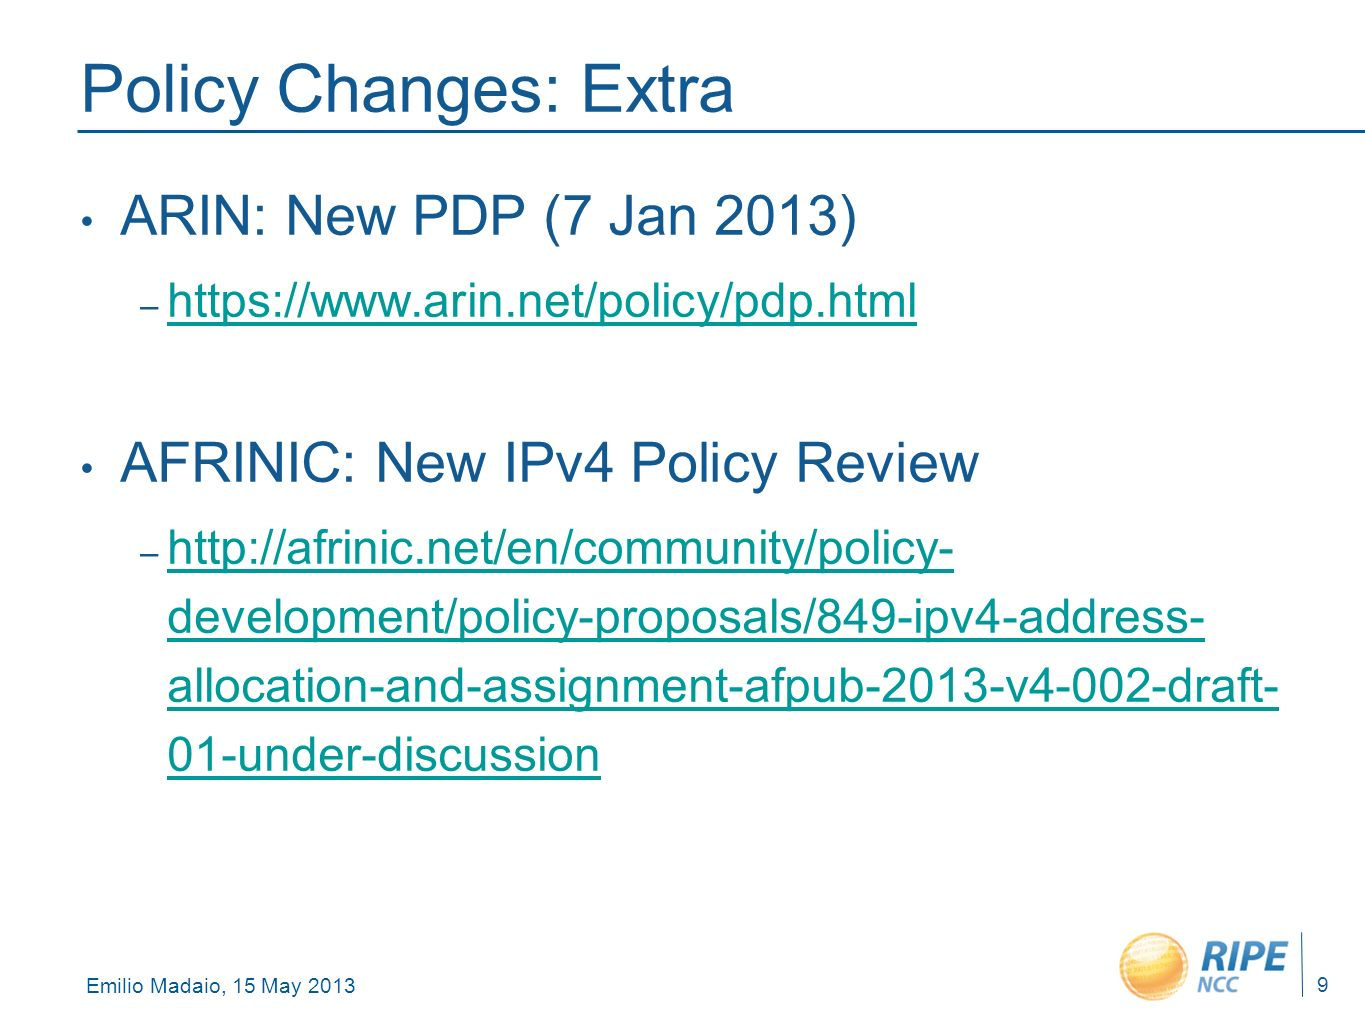 Emilio Madaio, 15 May 2013 9 Policy Changes: Extra ARIN: New PDP (7 Jan 2013) – https://www.arin.net/policy/pdp.html https://www.arin.net/policy/pdp.html AFRINIC: New IPv4 Policy Review – http://afrinic.net/en/community/policy- development/policy-proposals/849-ipv4-address- allocation-and-assignment-afpub-2013-v4-002-draft- 01-under-discussion http://afrinic.net/en/community/policy- development/policy-proposals/849-ipv4-address- allocation-and-assignment-afpub-2013-v4-002-draft- 01-under-discussion